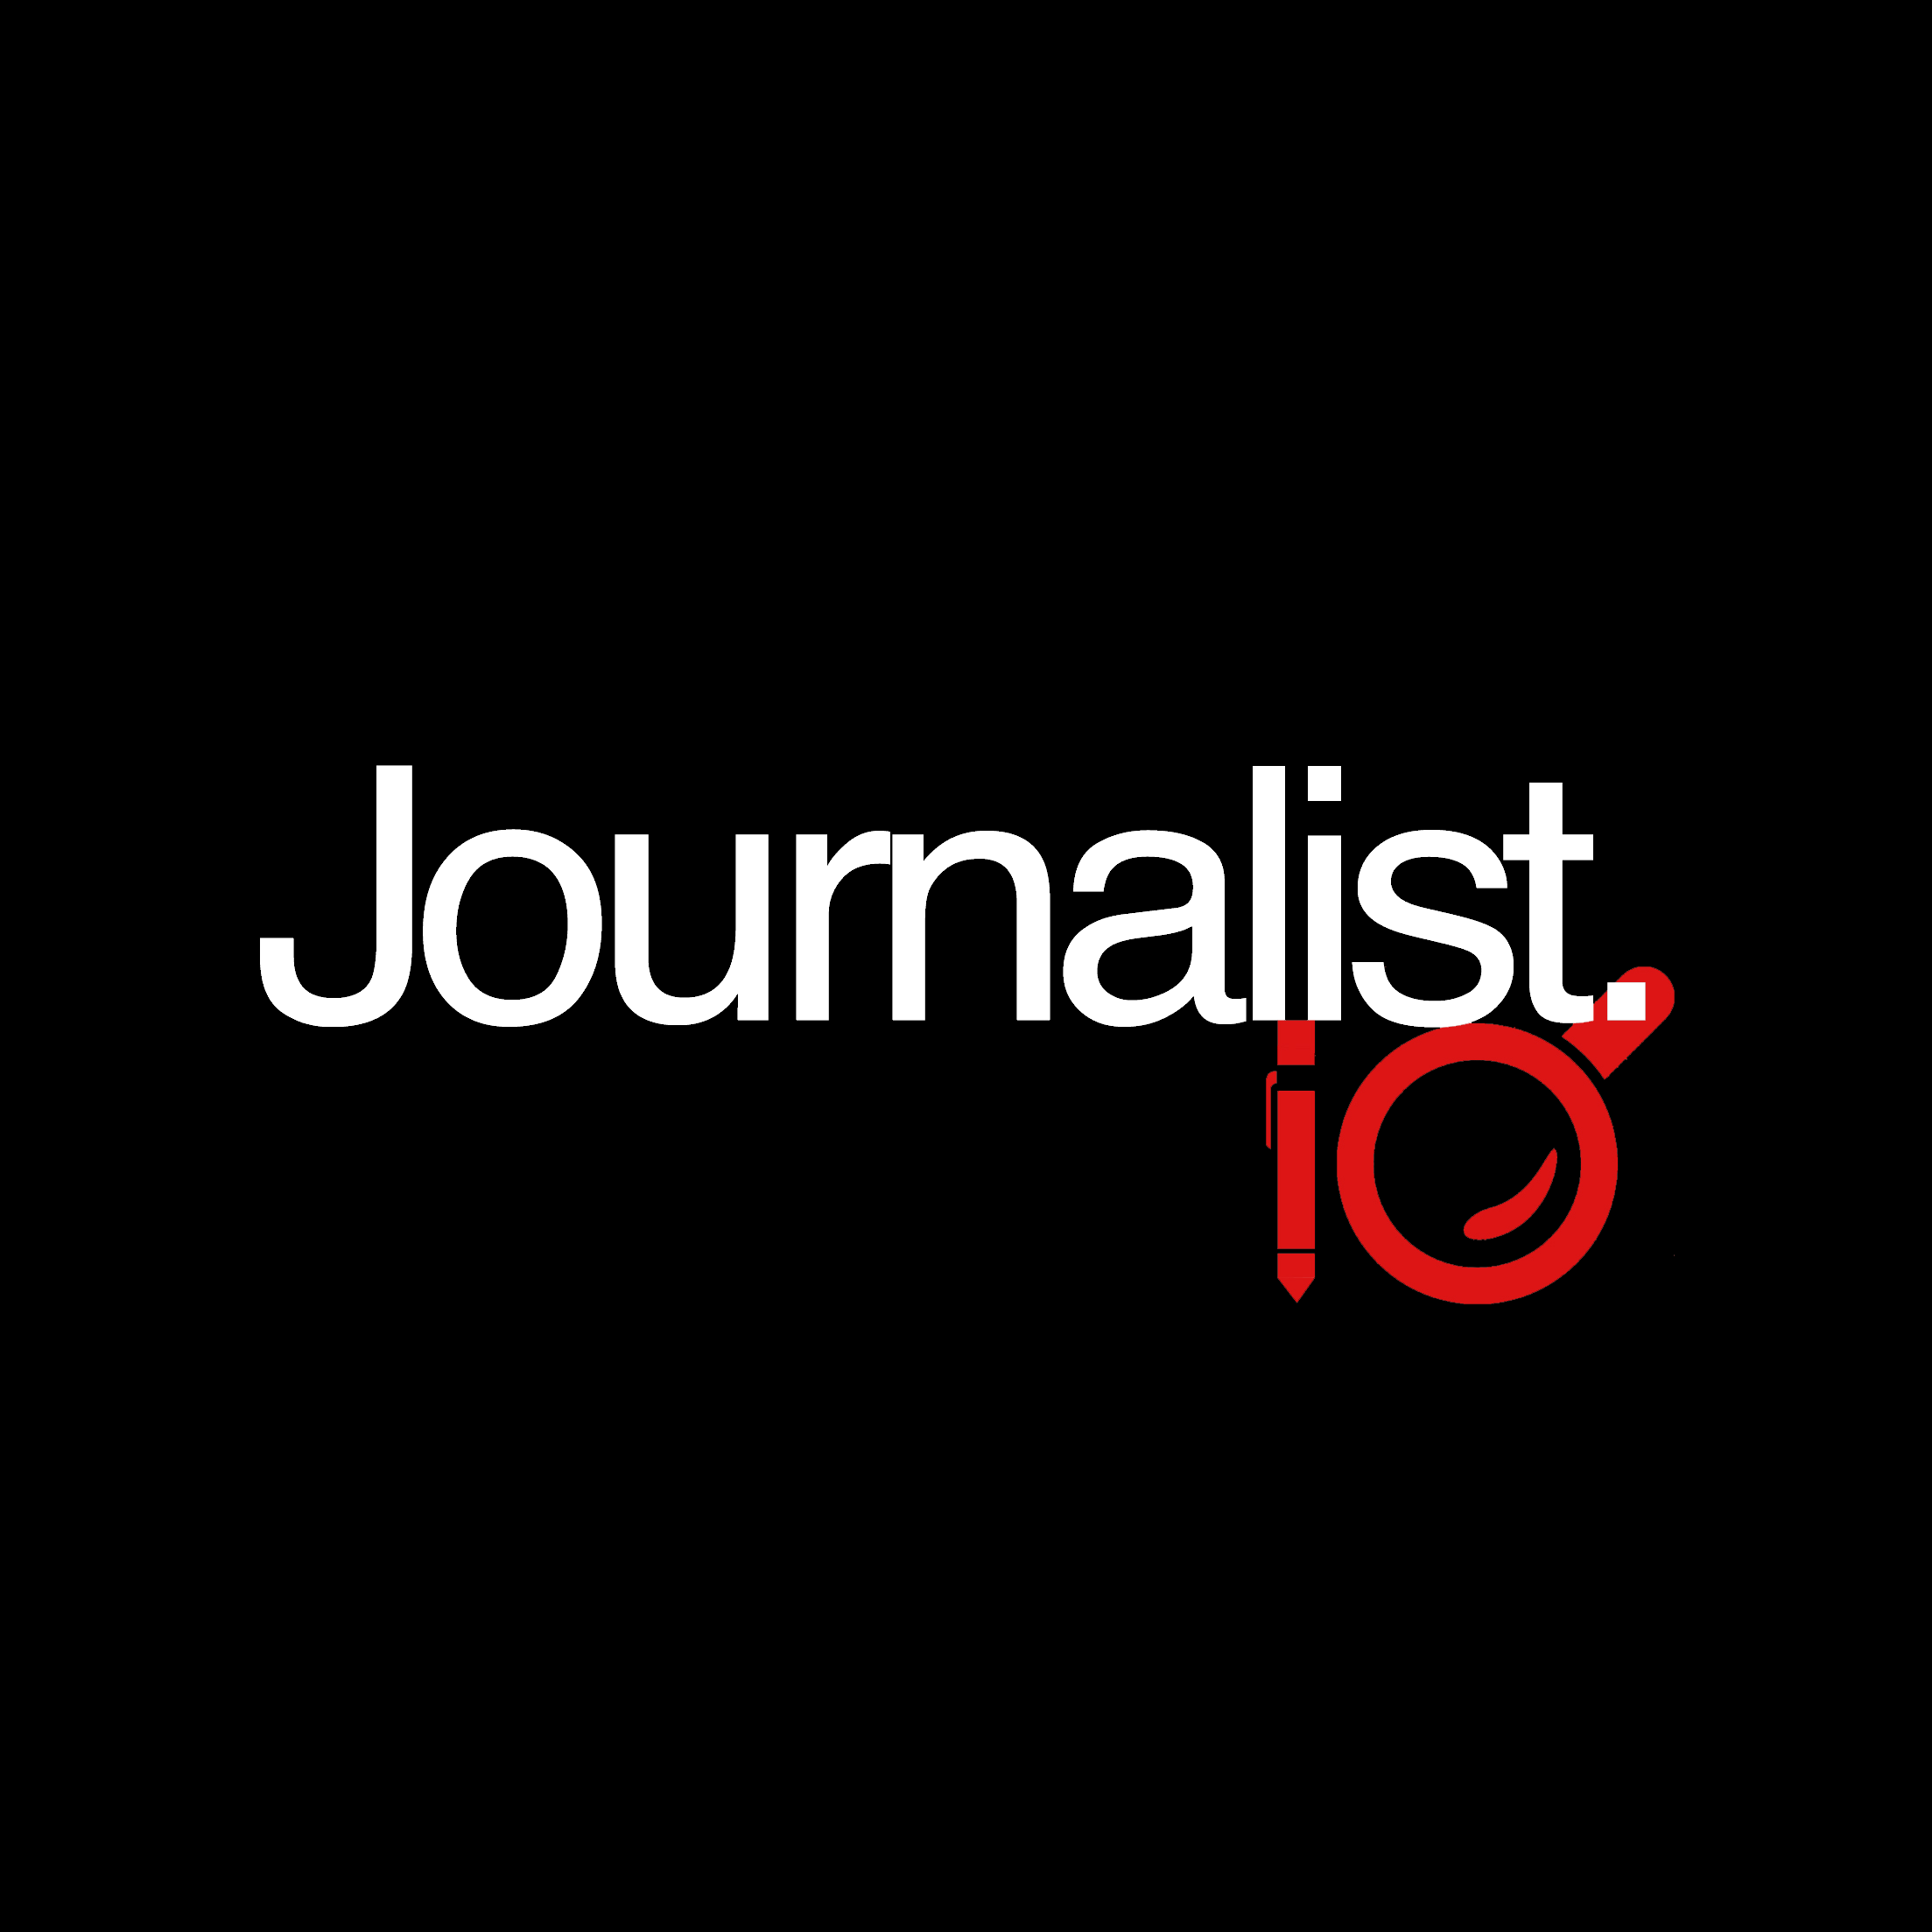 Journalist.io